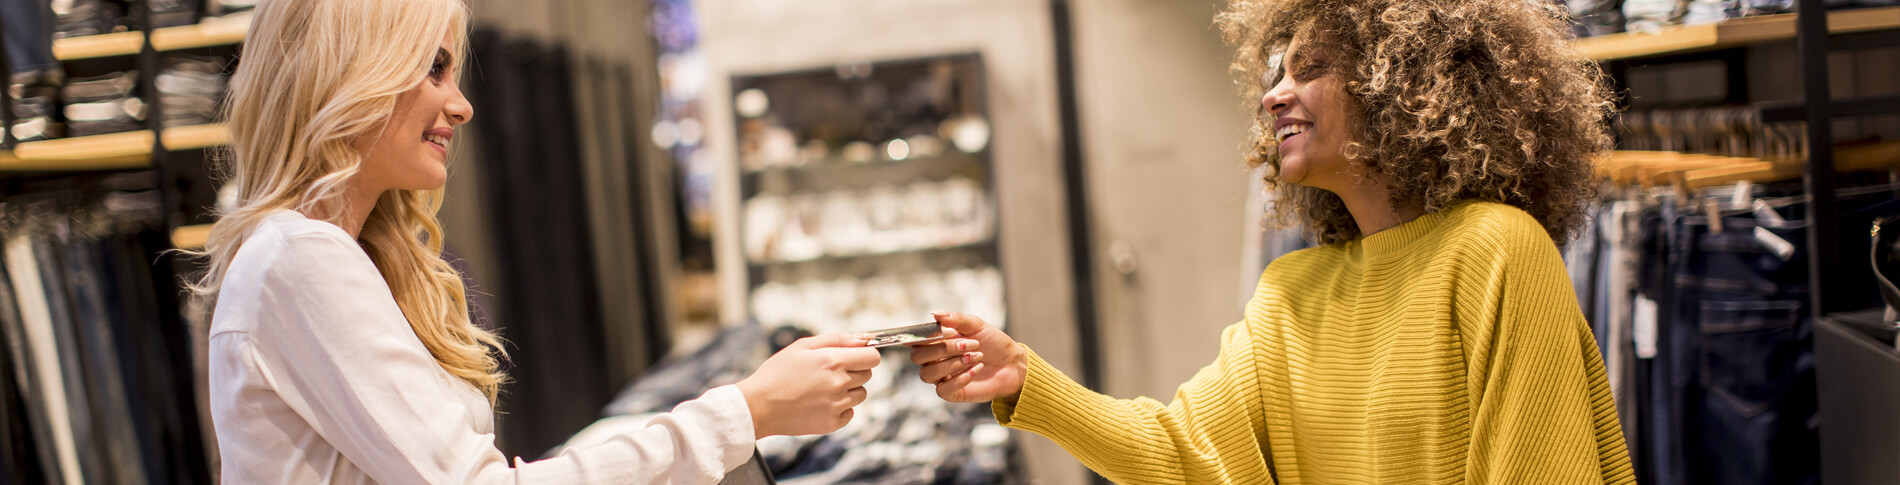 4G connectivity for retail